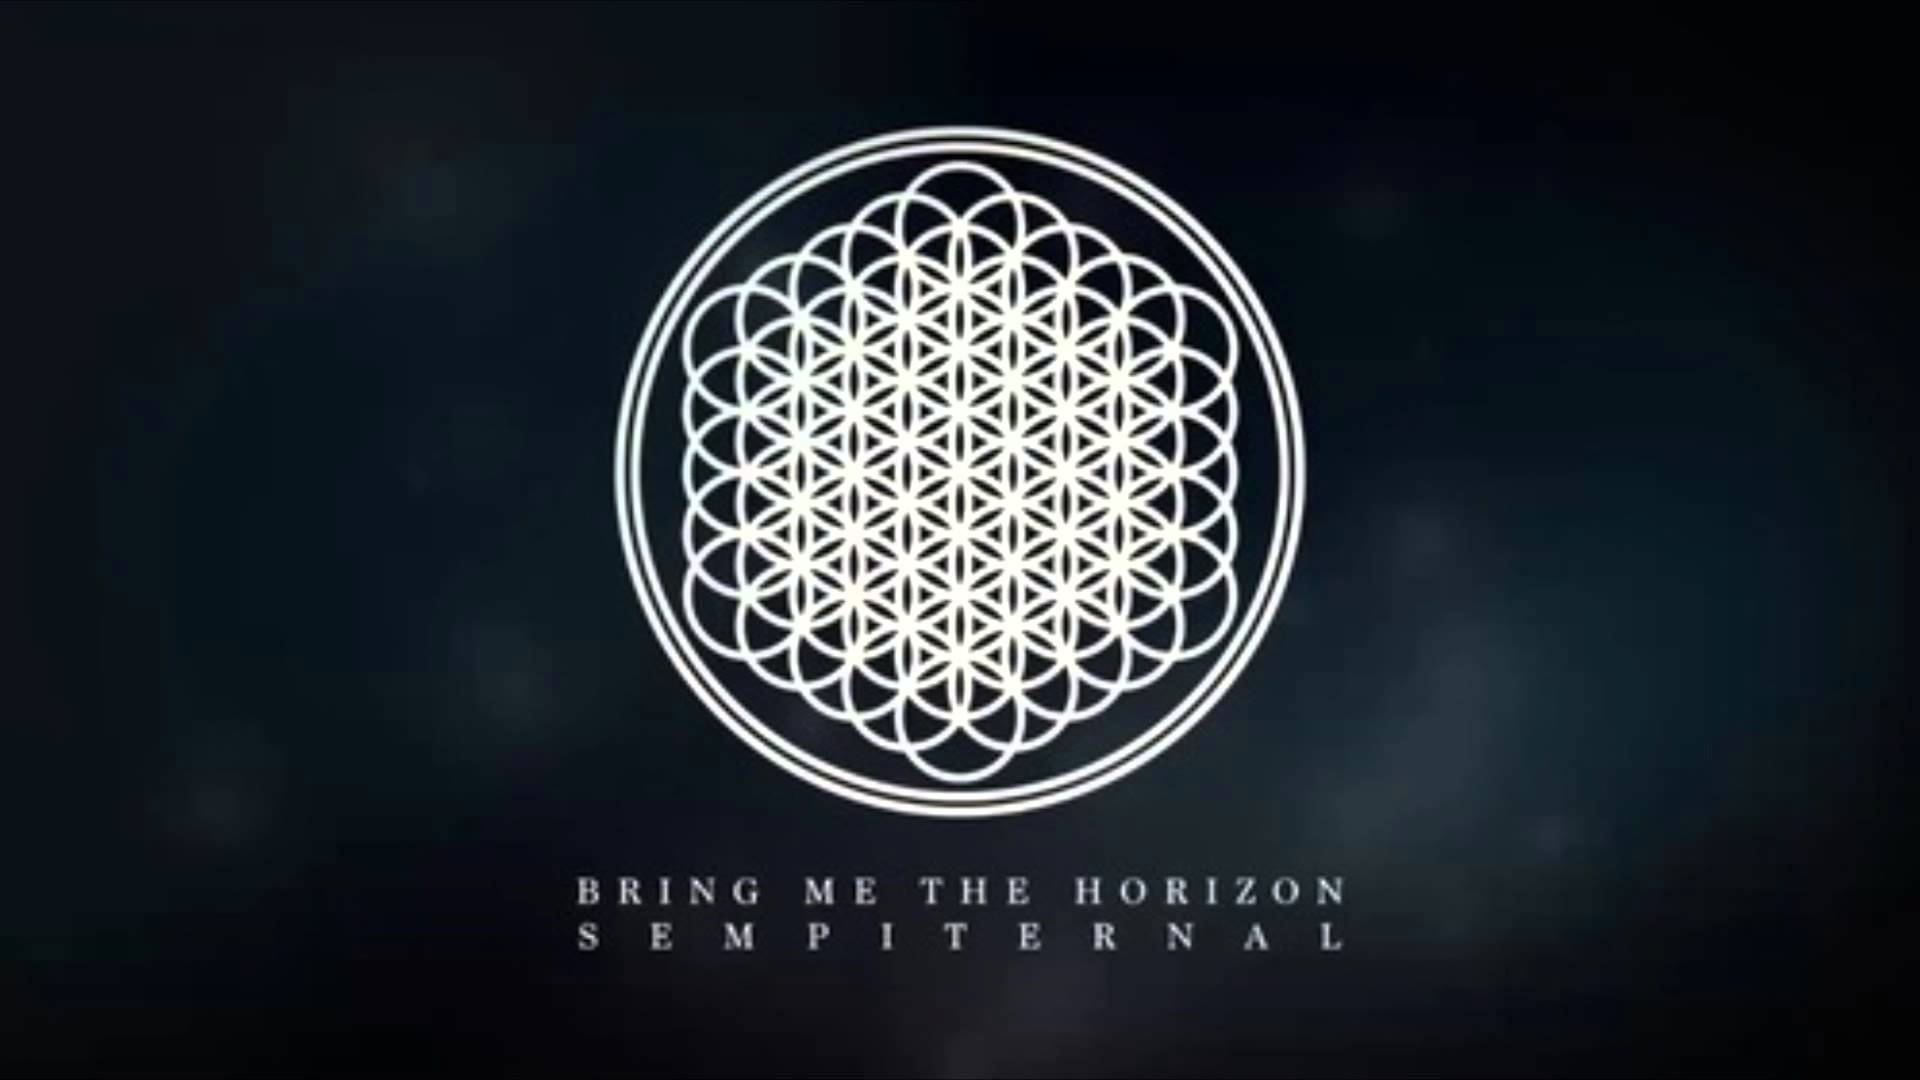 Bring Me The Horizon 2015 Wallpapers - Wallpaper Cave